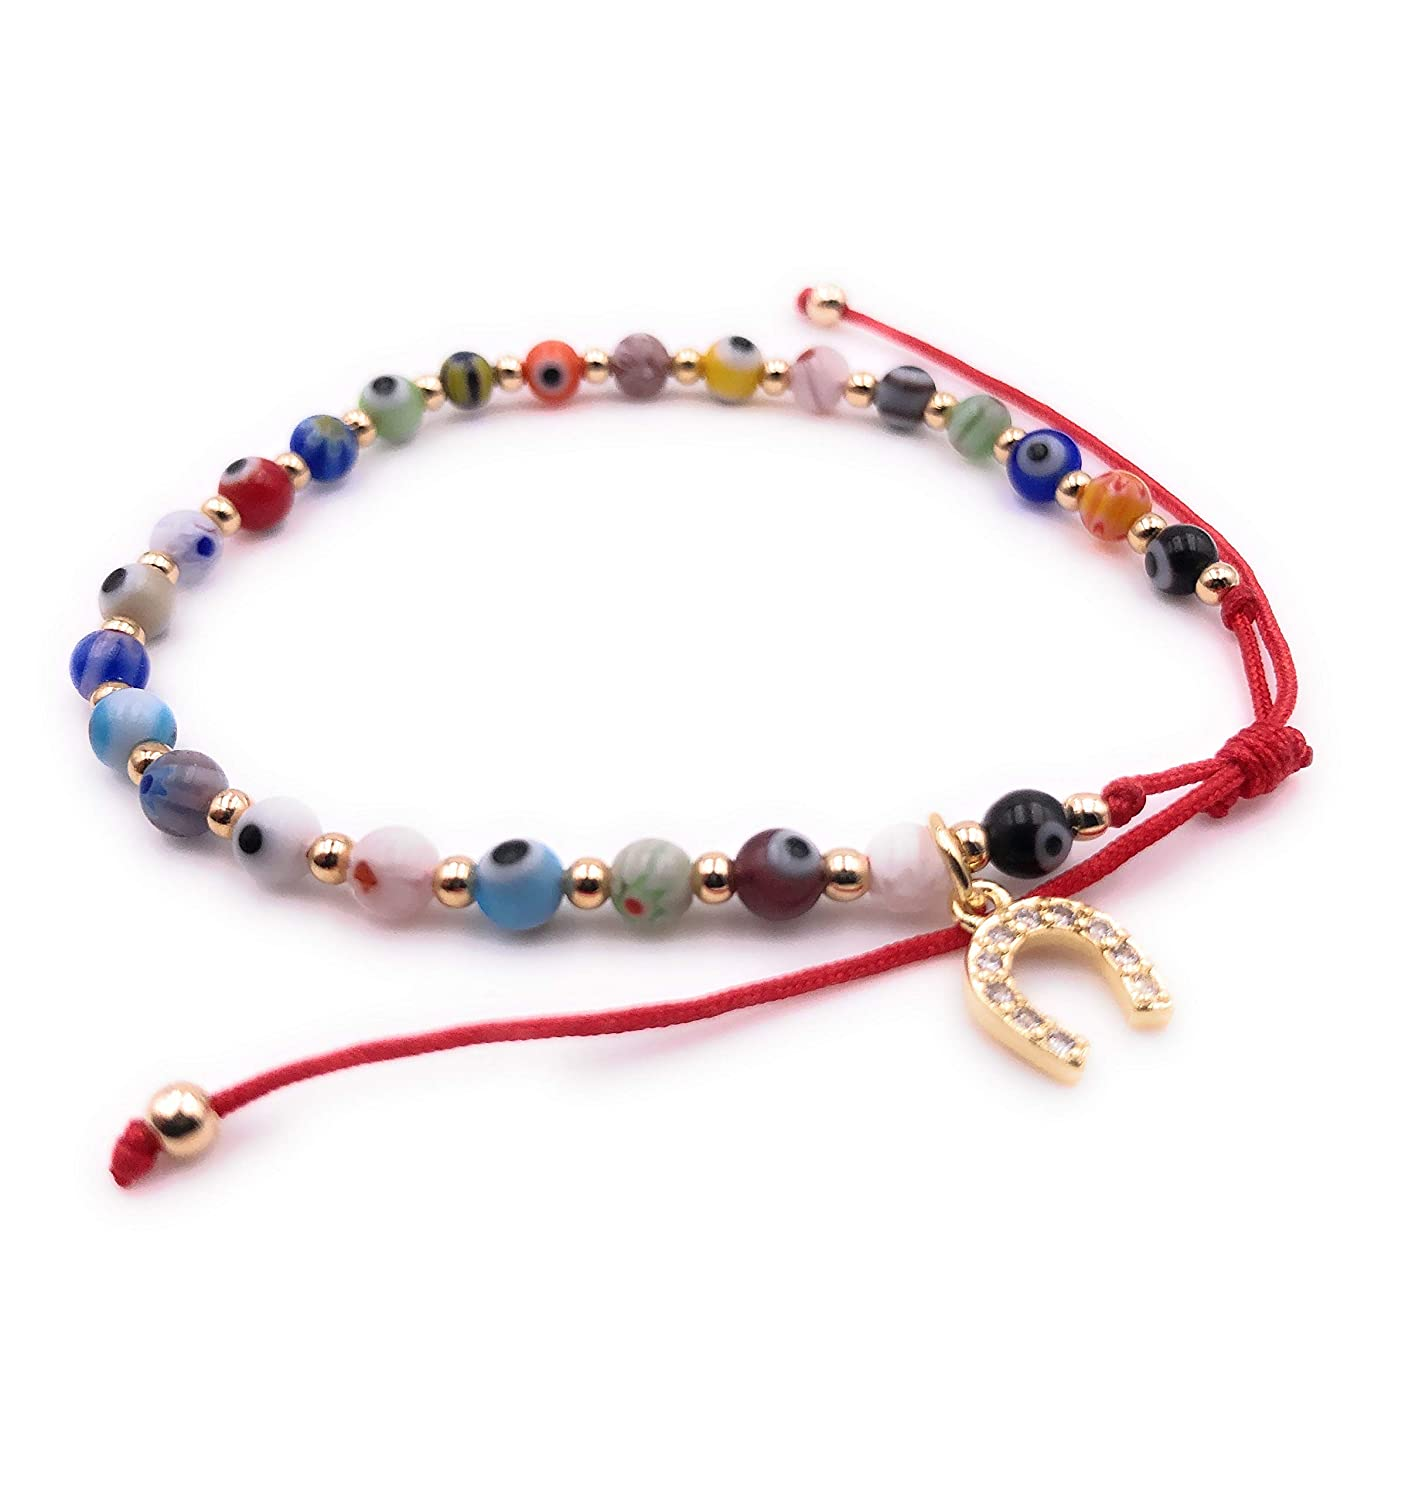 Lucky Bracelet All items free shipping Charms for Women Evil Dainty Beads Max 76% OFF Eye